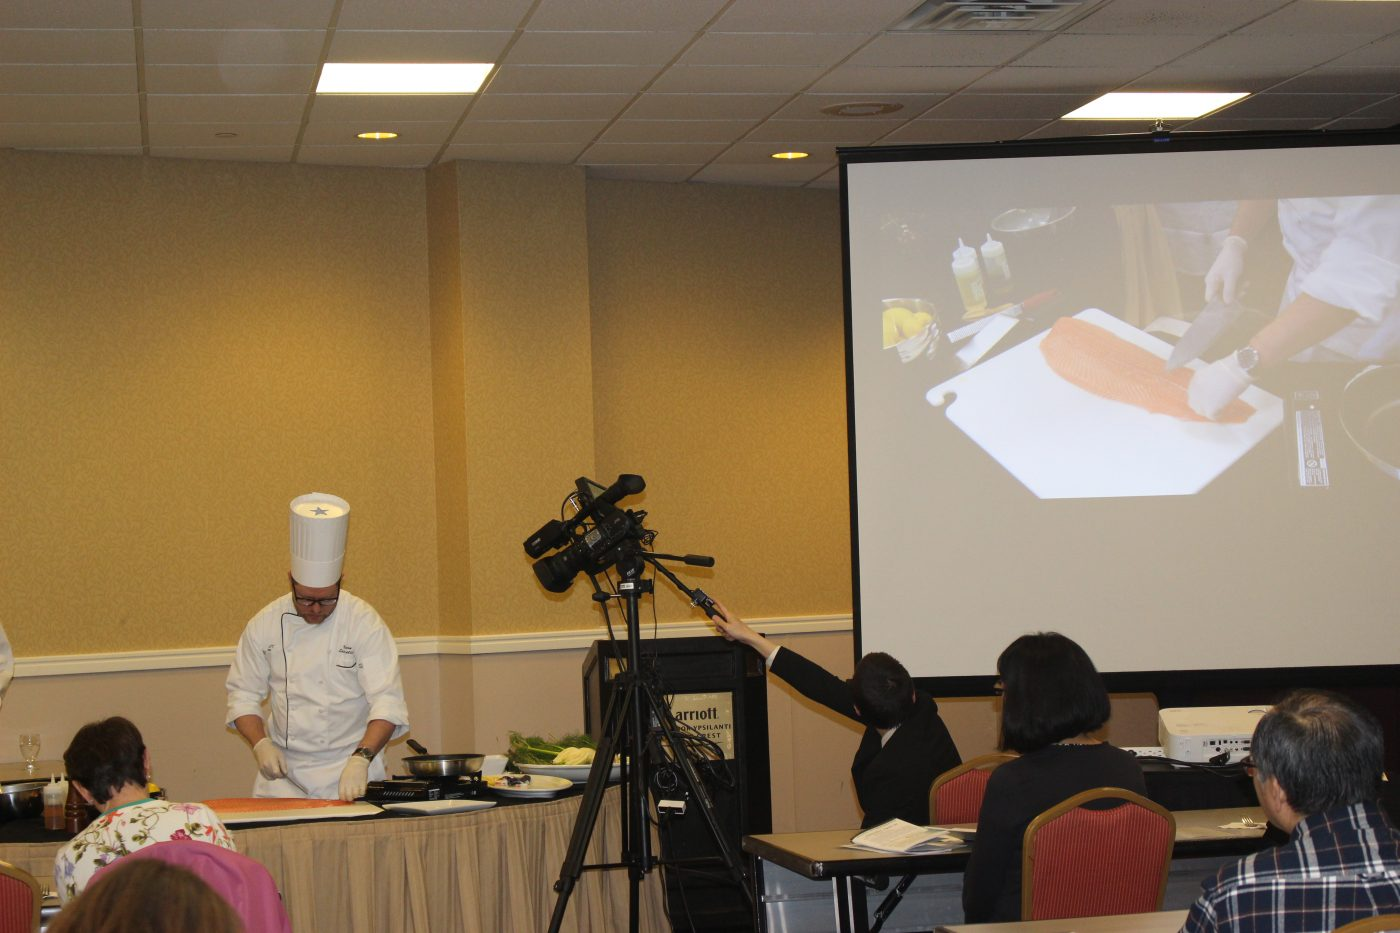 Chef Penn Cooking Demonstration